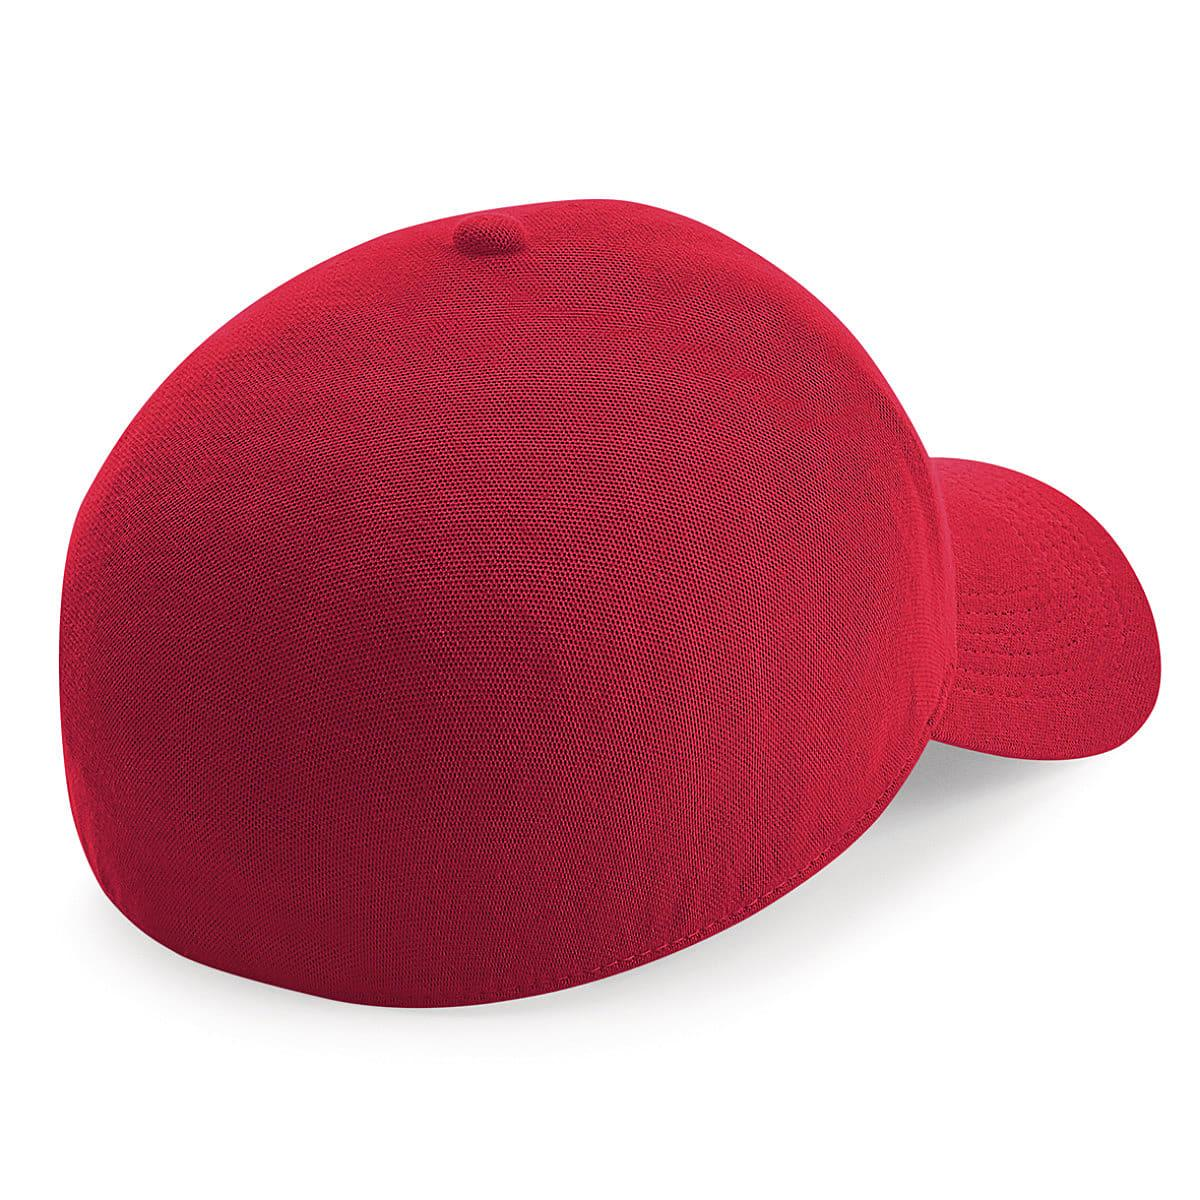 Beechfield Seamless Waterproof Cap in Red (Product Code: B550)